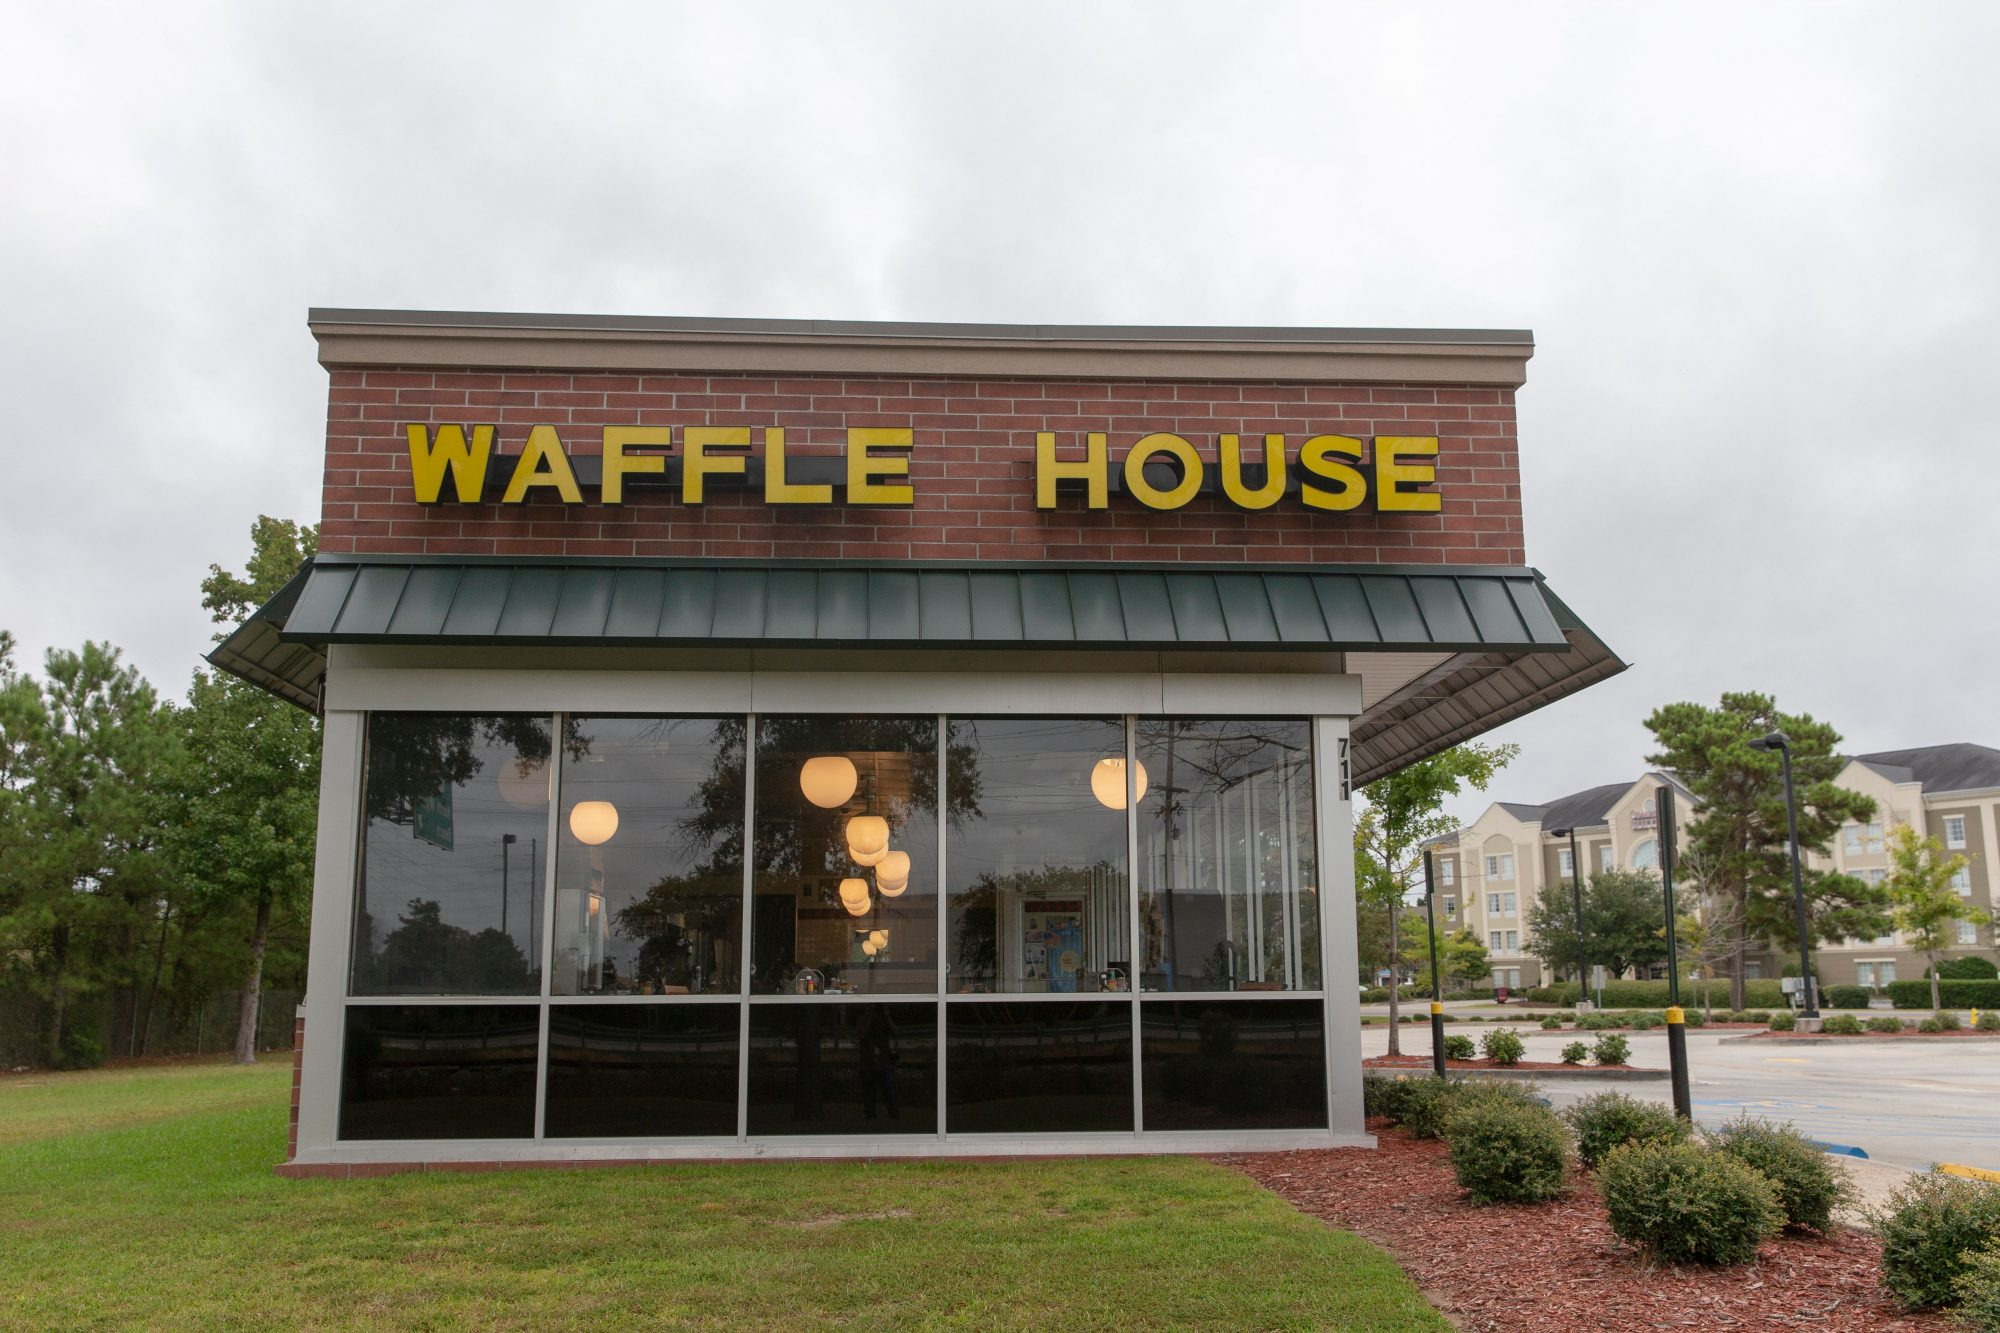 Waffle House Stays Open and Slashes Prices During Hurricanes Like Florence